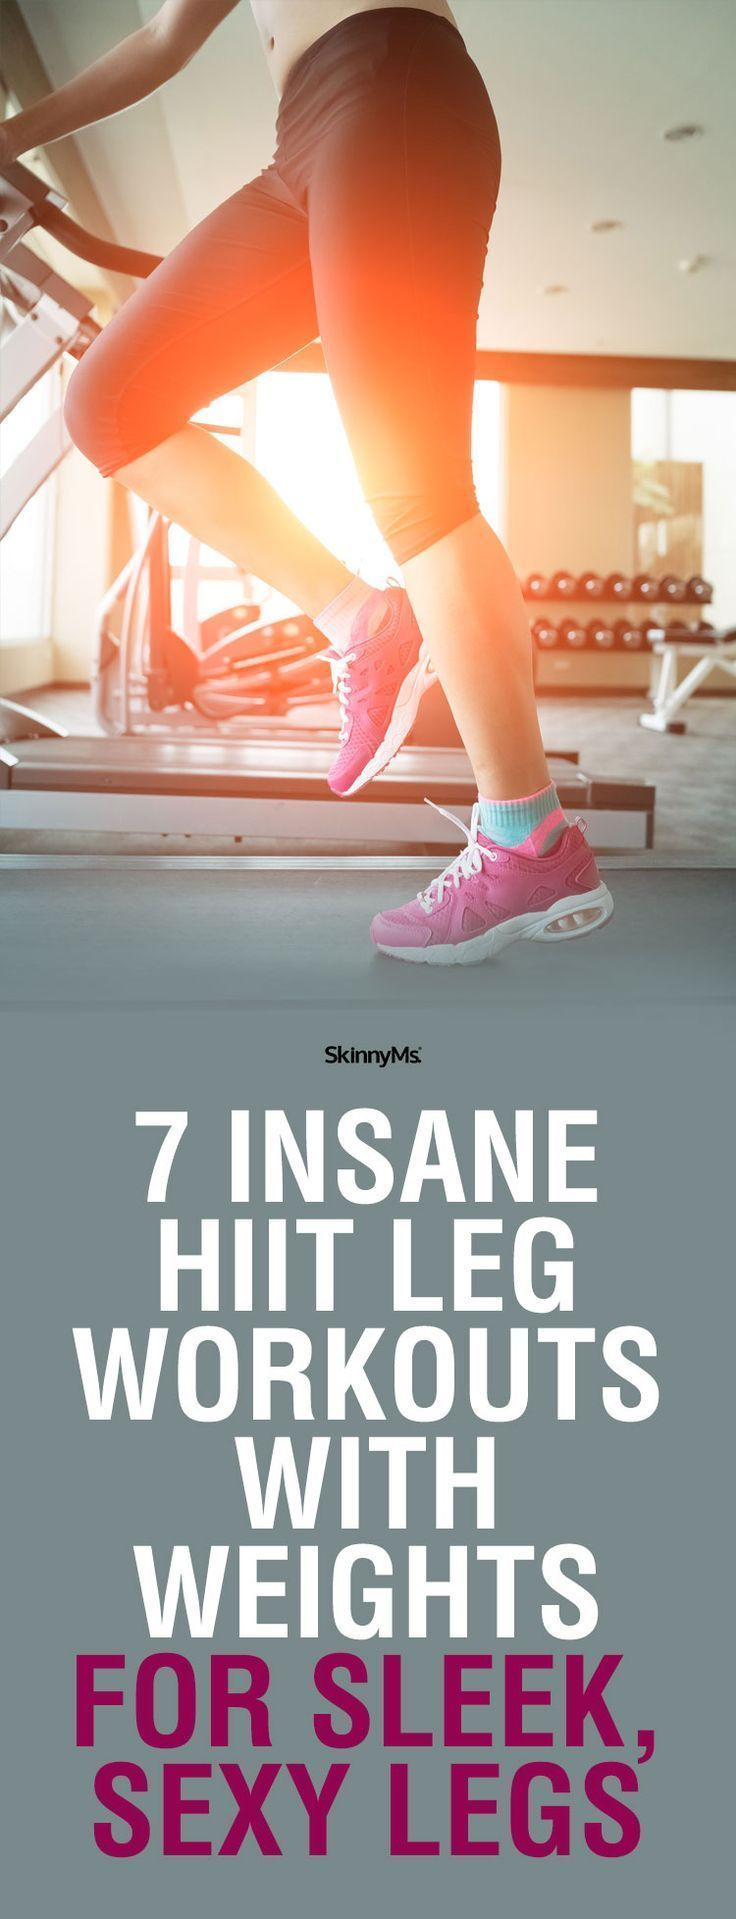 For strengthening the glutes, hamstrings, and calves, while keeping the thighs svelte, try these HII...